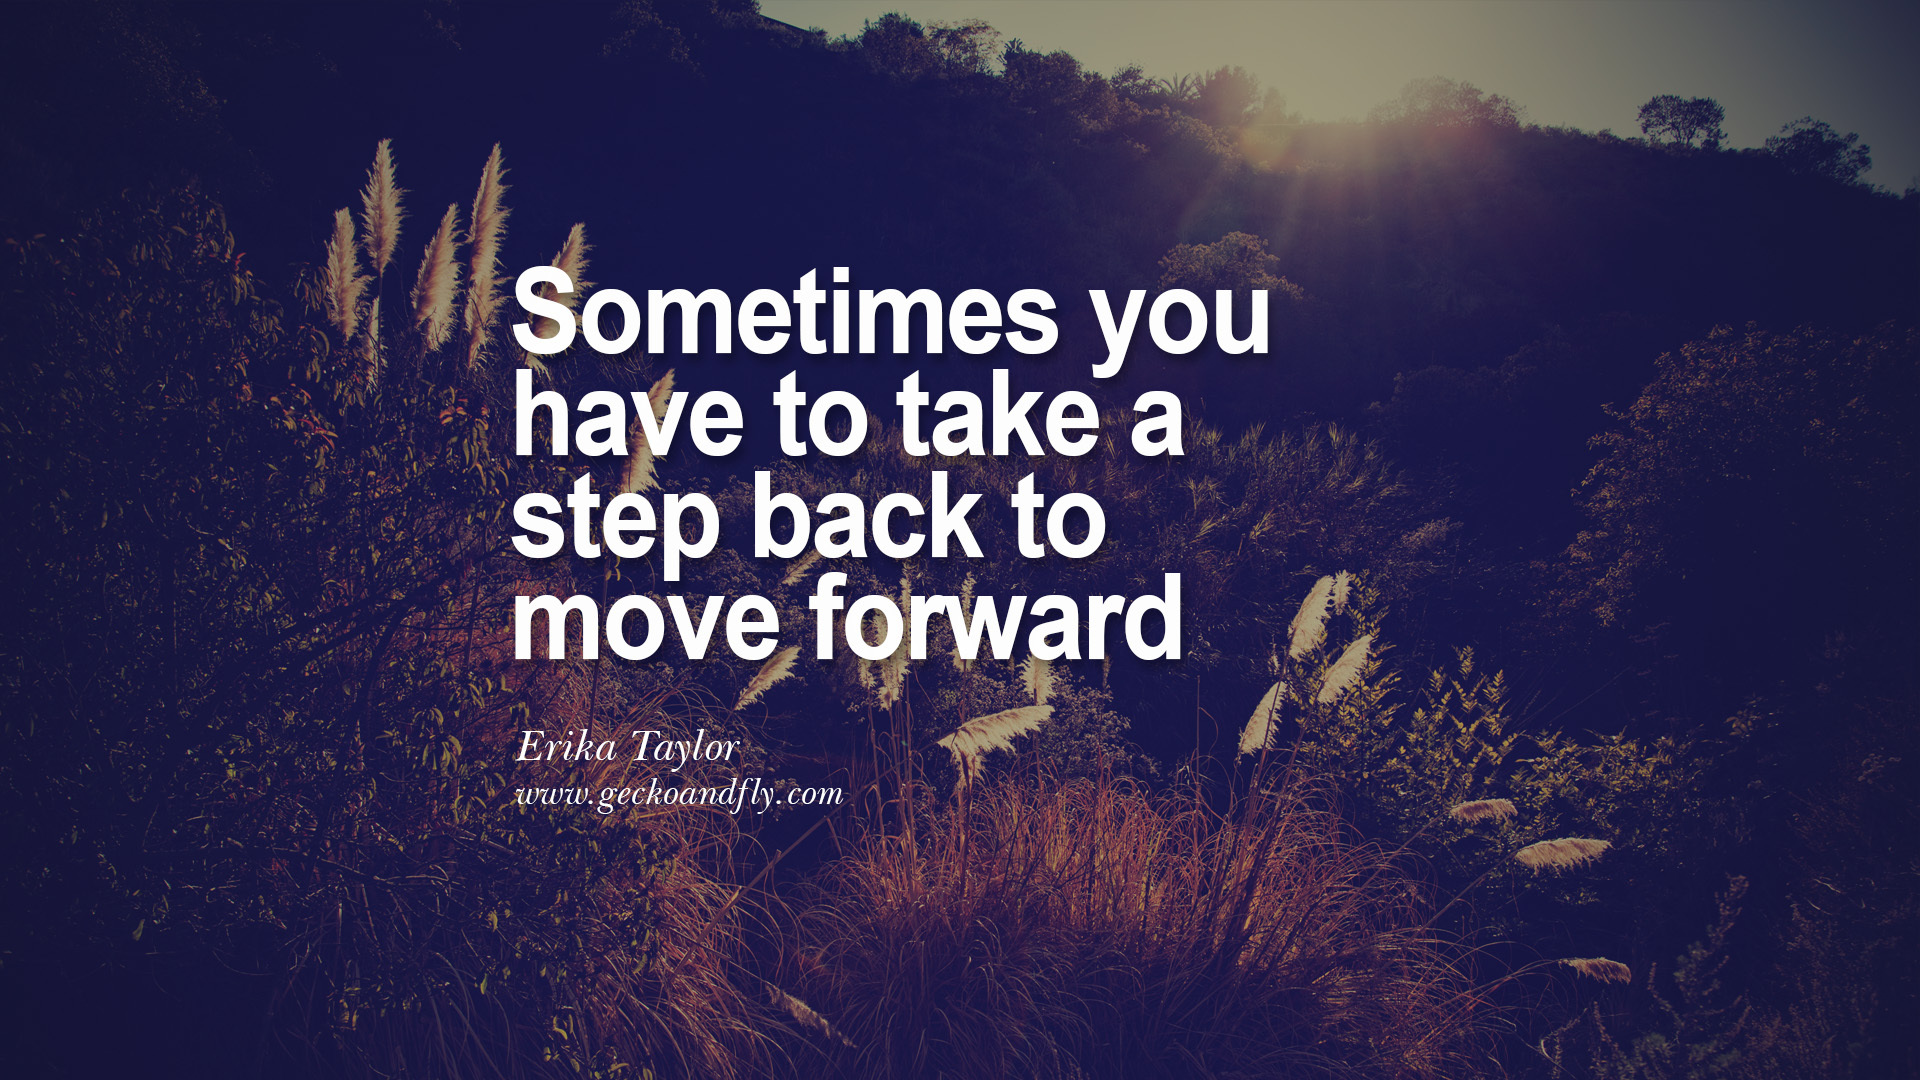 Quotes About Taking A Step Back In Relationships: Sometimes You Have To Move On Quotes. QuotesGram